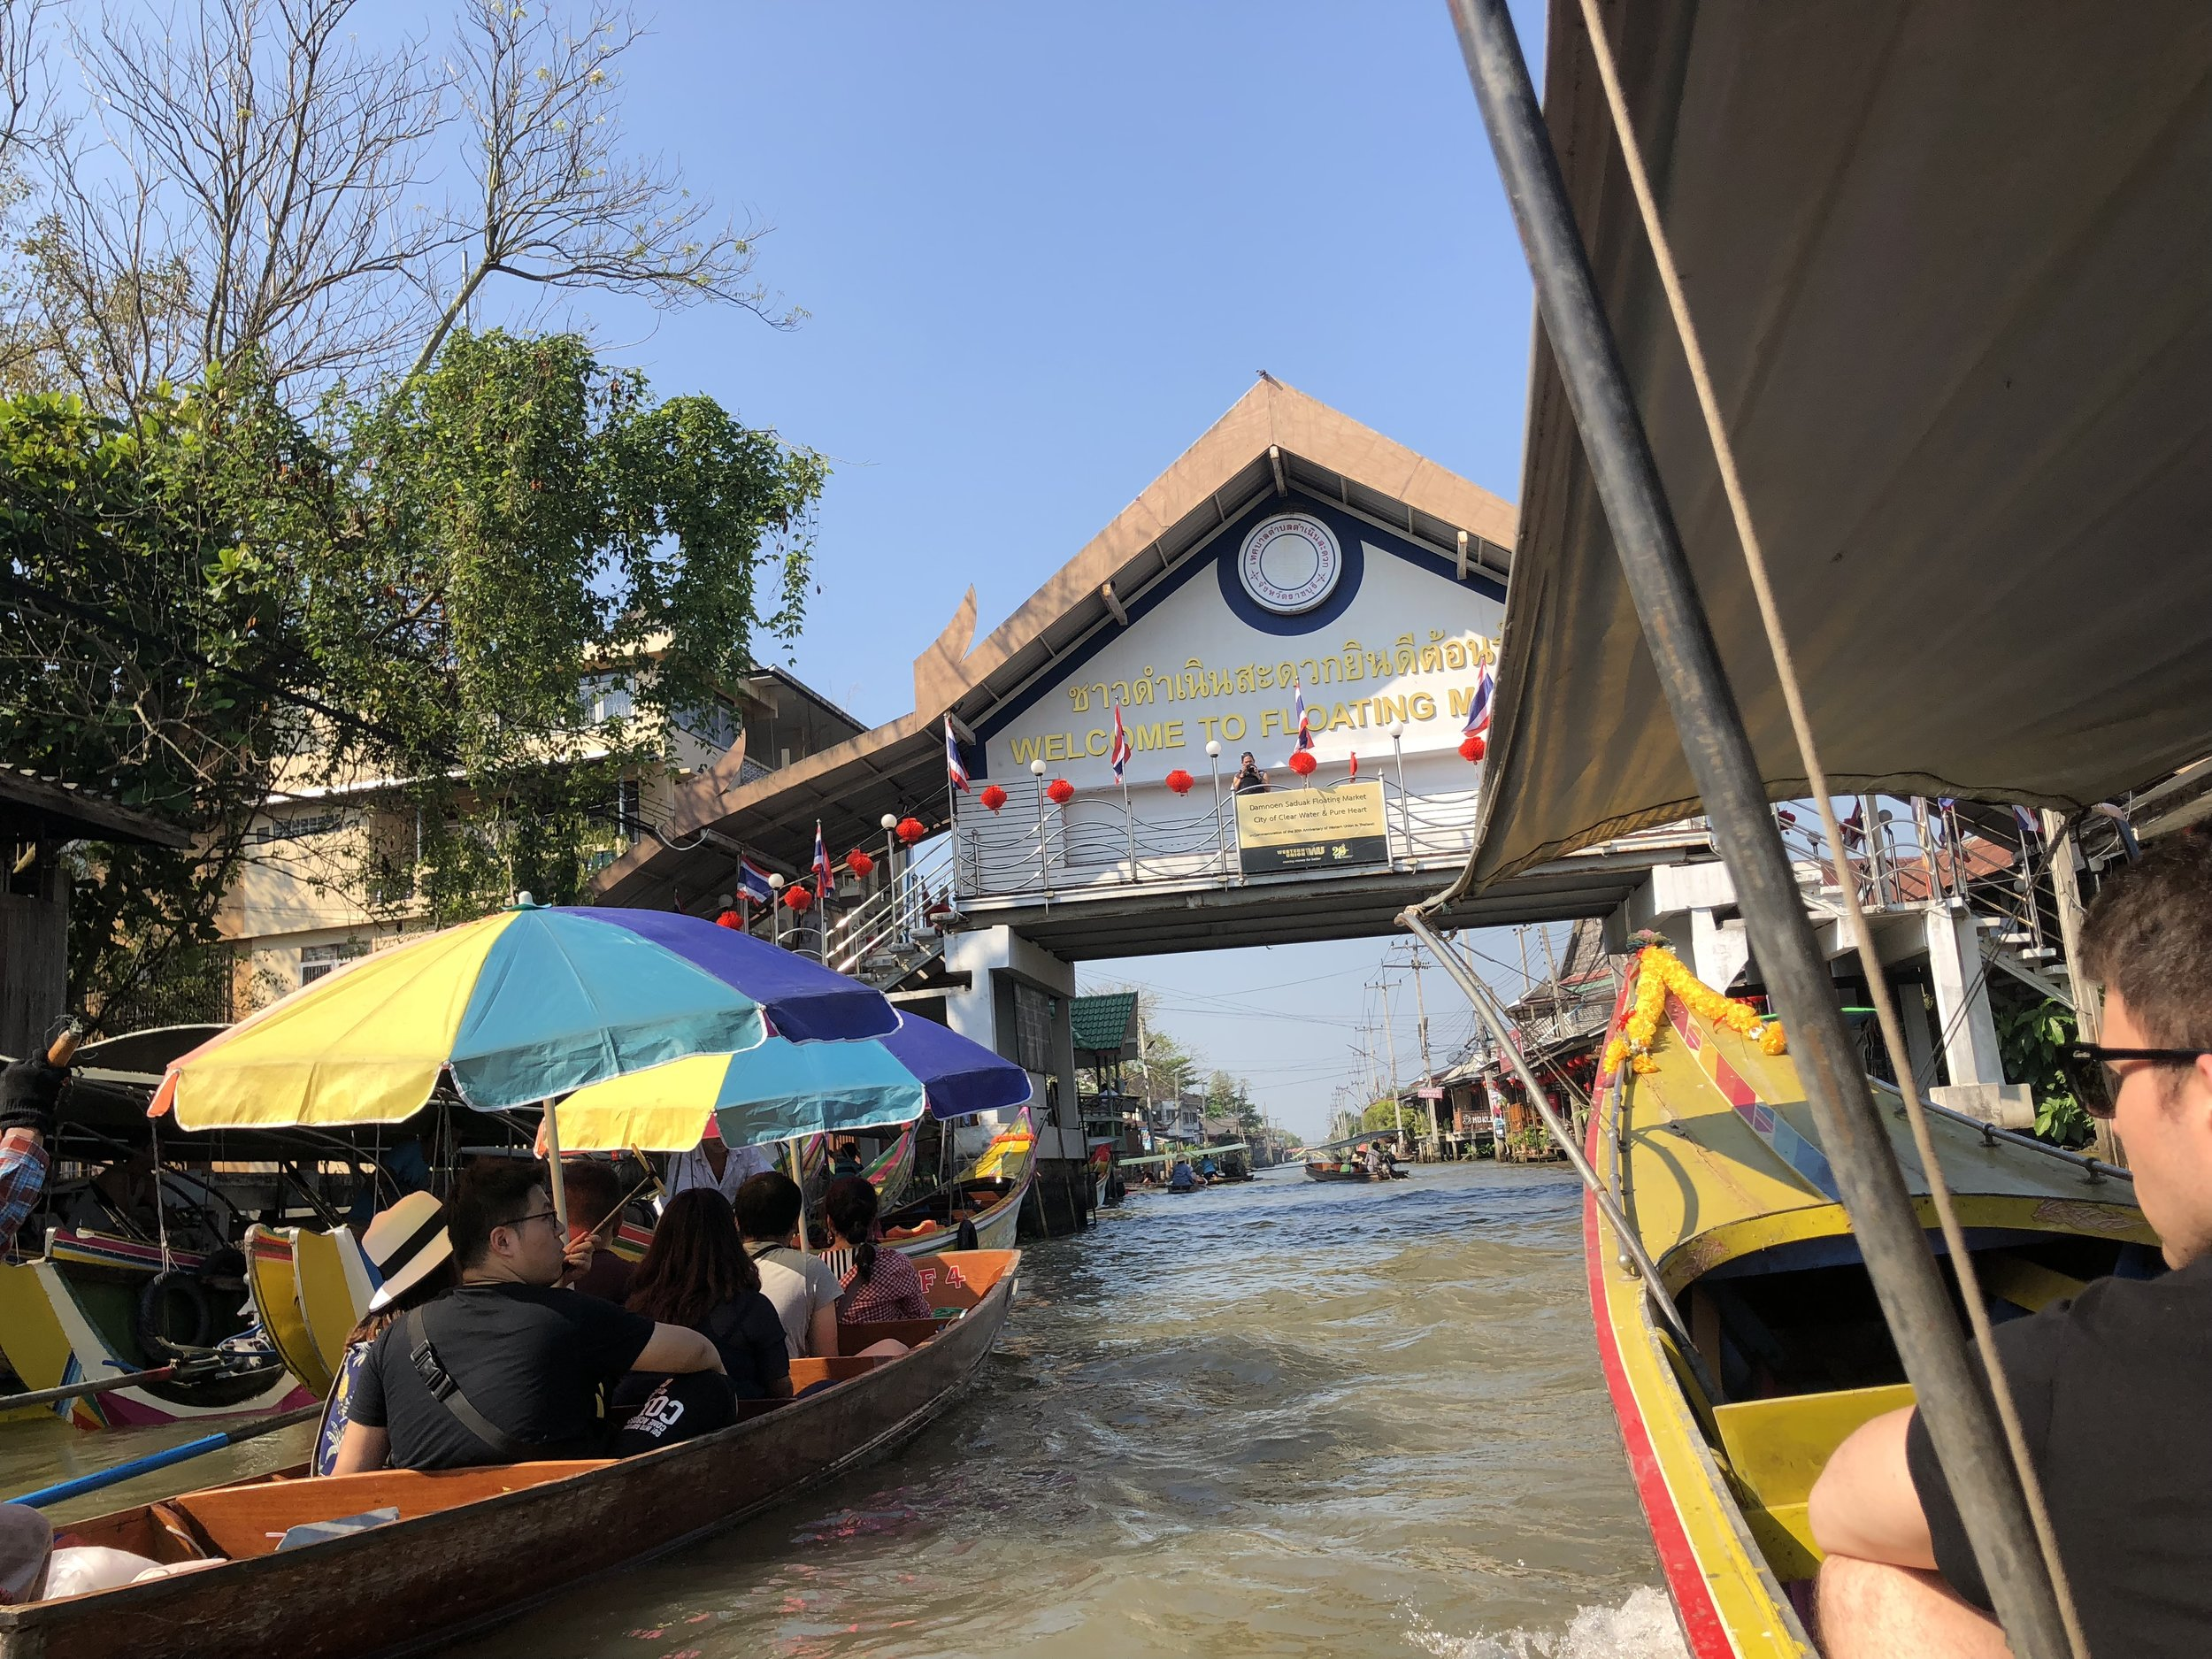 The entrance of the Floating Market! Very distinct.